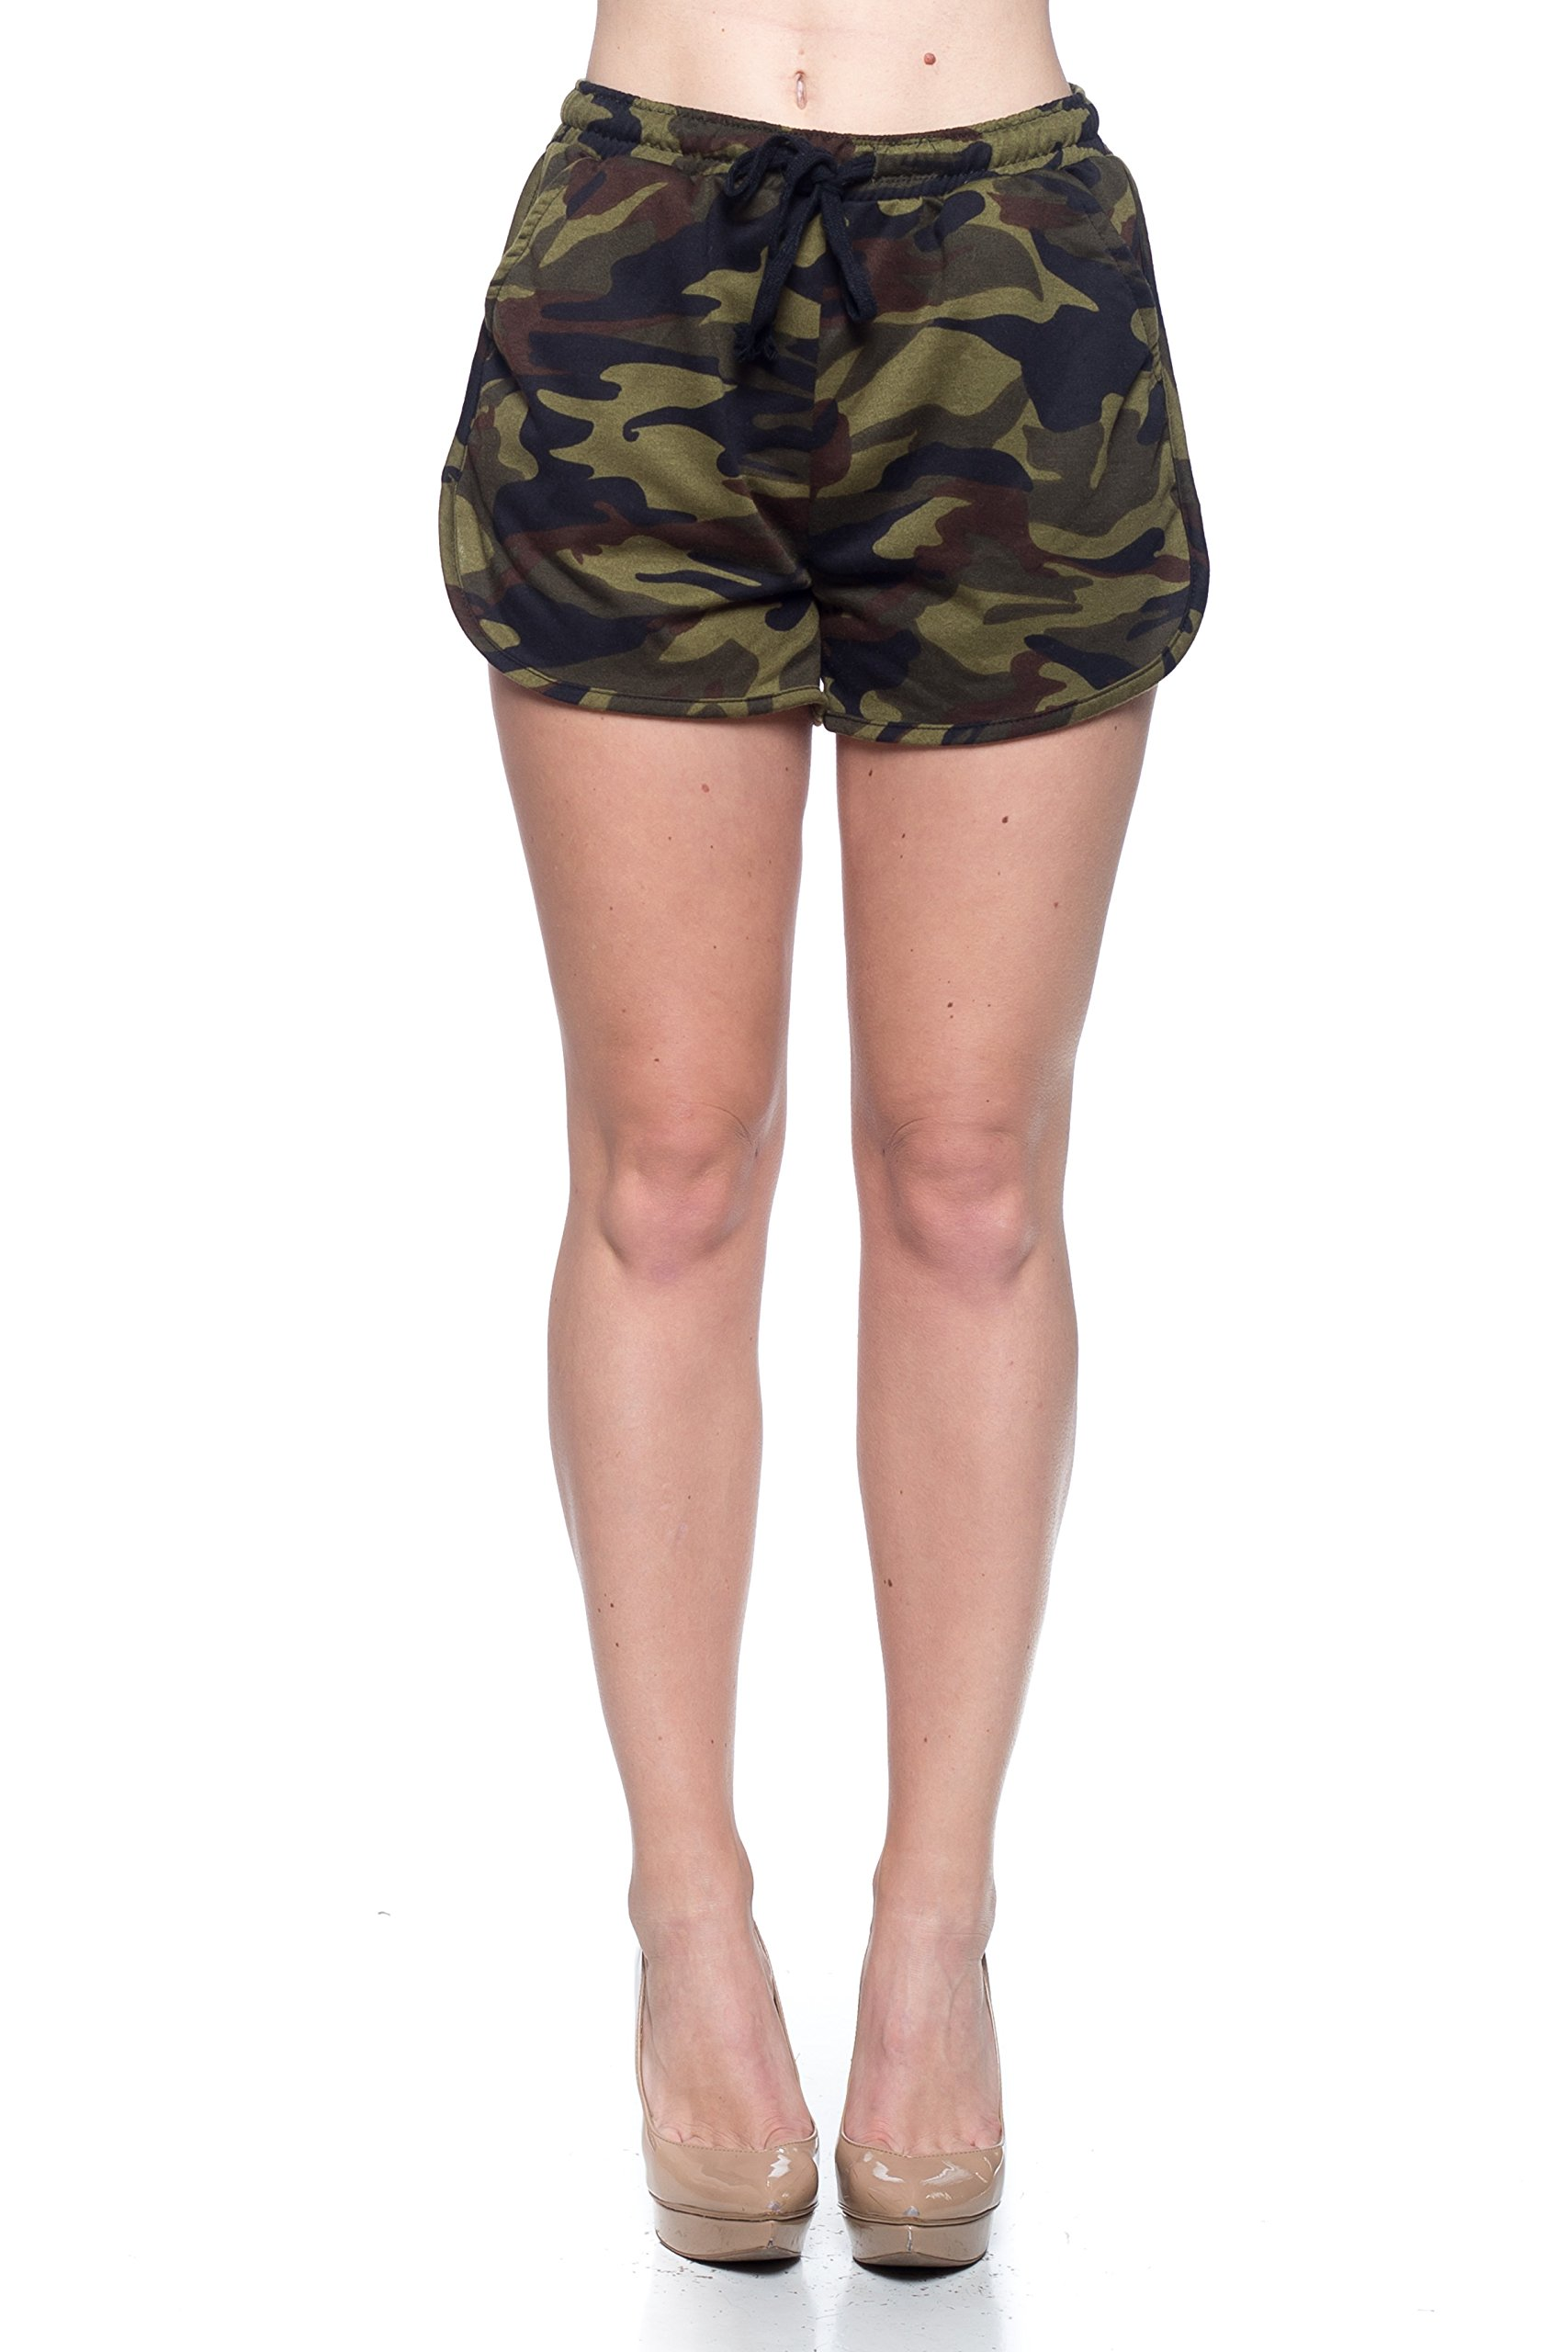 Calilogo Women's Weed Marijuana Pot Leaf Army Drawstring Shorts (Small / Medium, Army Shorts)